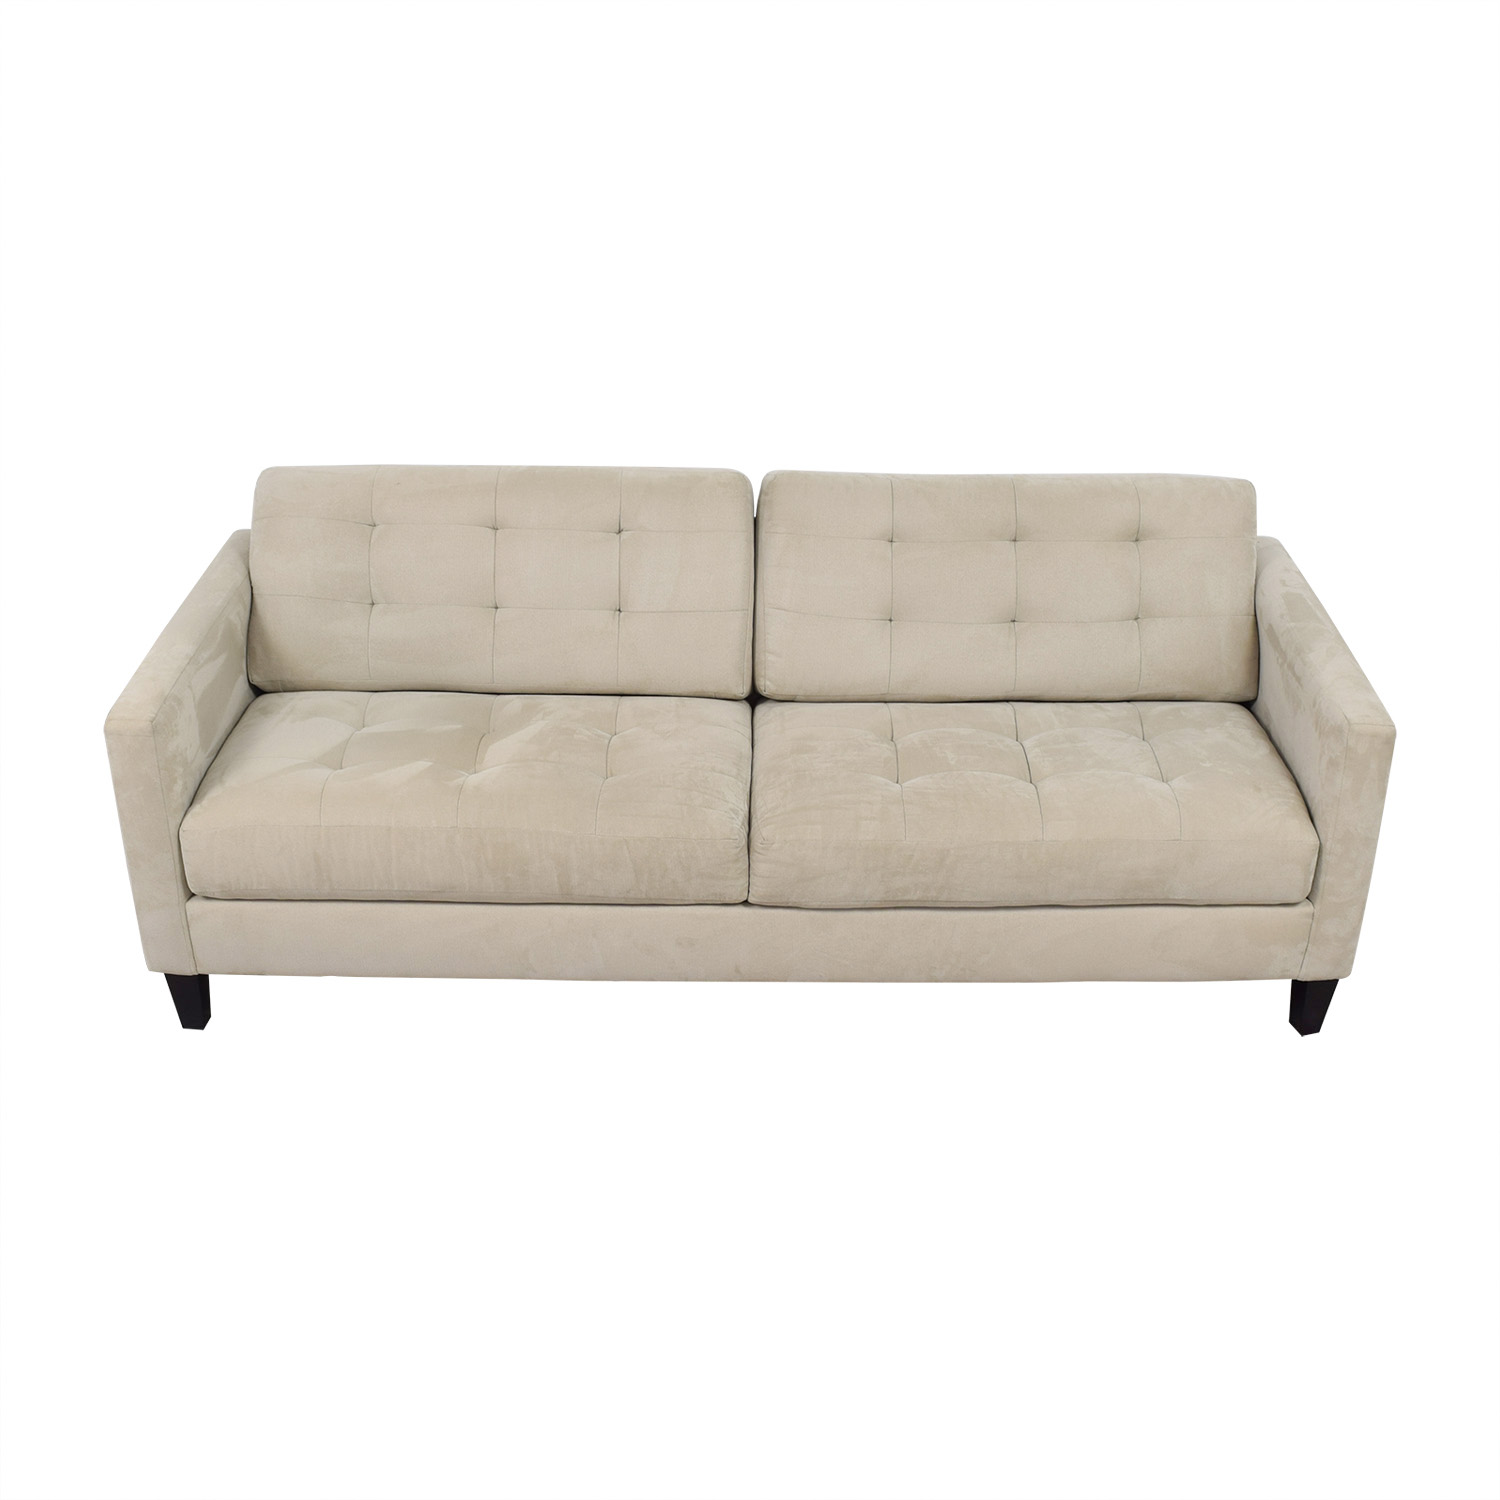 buy Macy's Beige Tufted Two Cushion Sofa Macy's Sofas